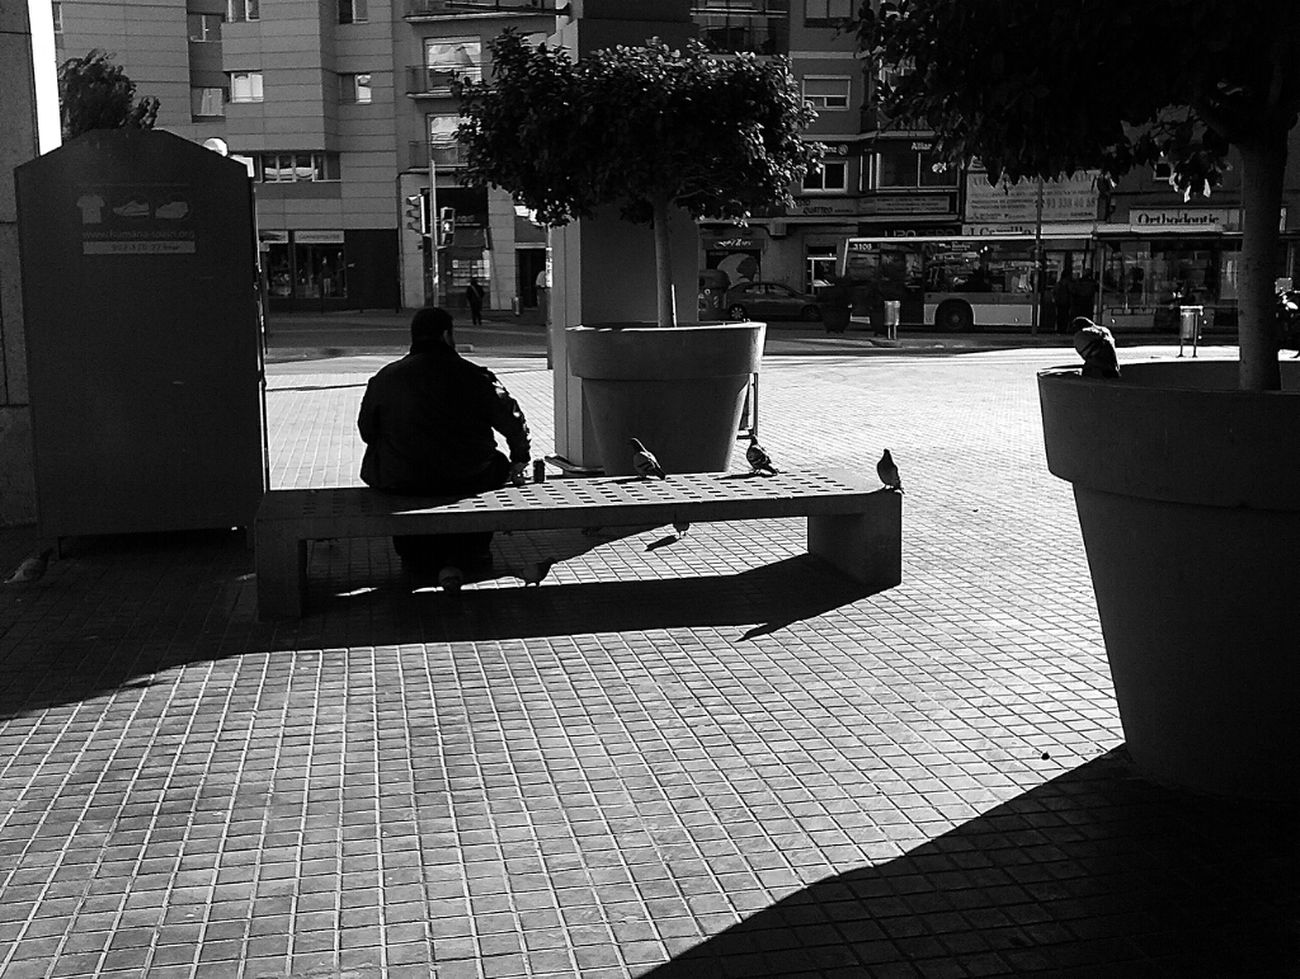 Streetphotography Blackandwhite Street Photography Street Life Streetphoto_bw Bw_collection